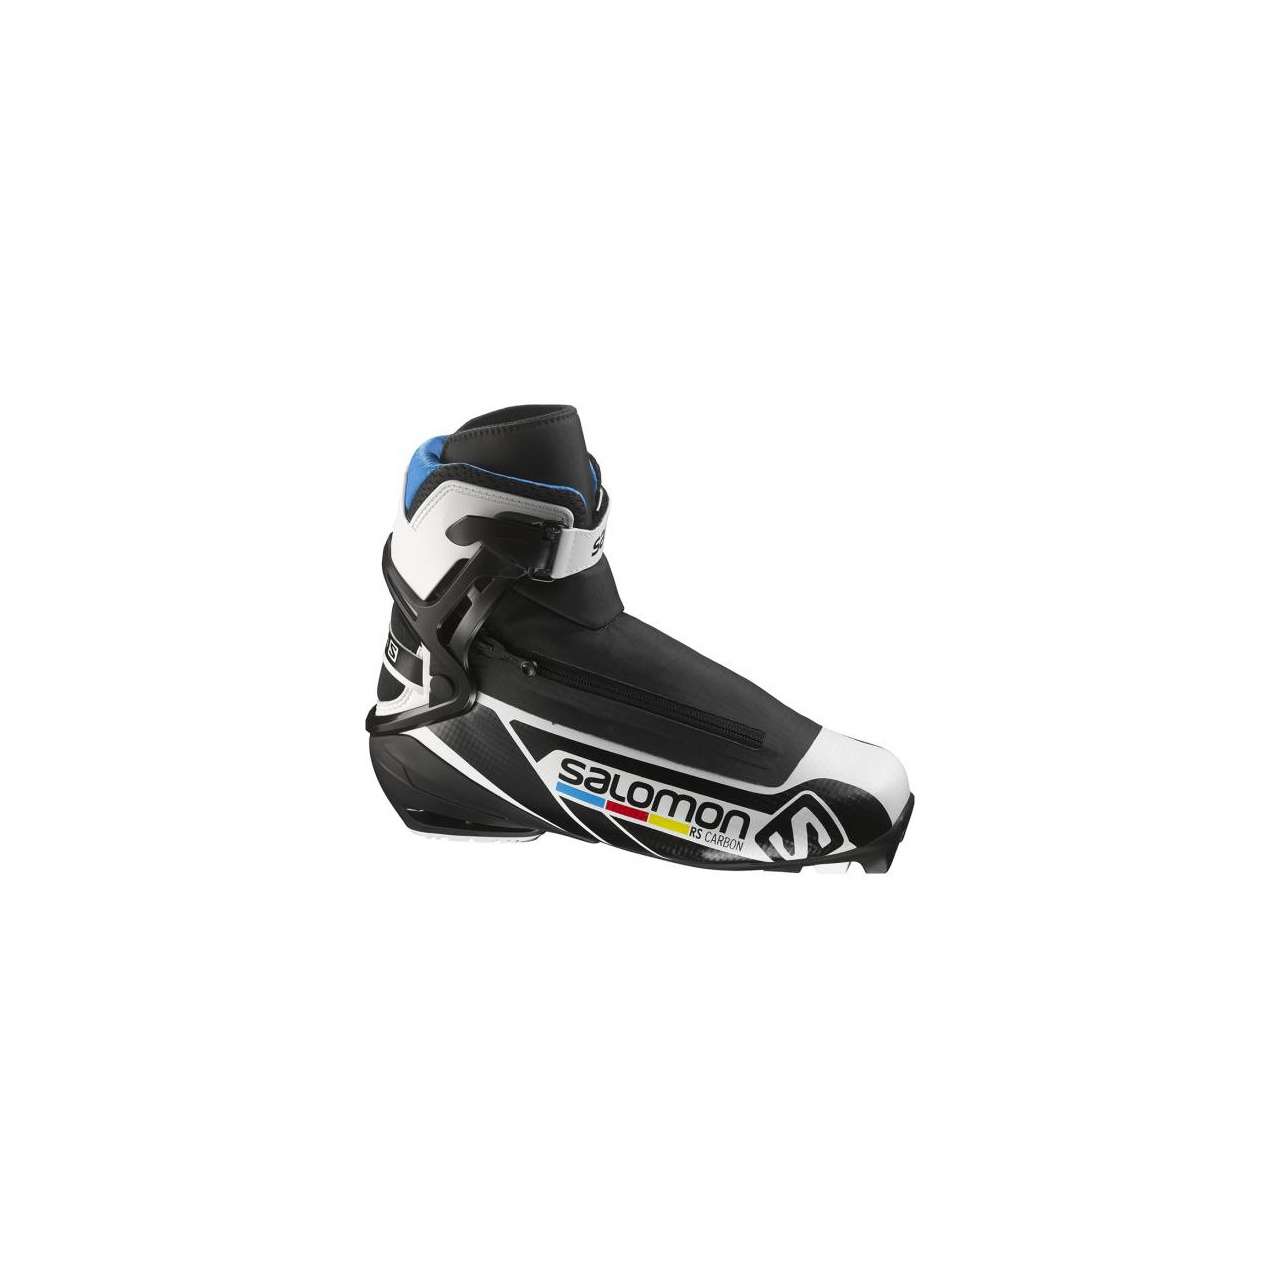 Salomon Rs Carbon  e78c61454d